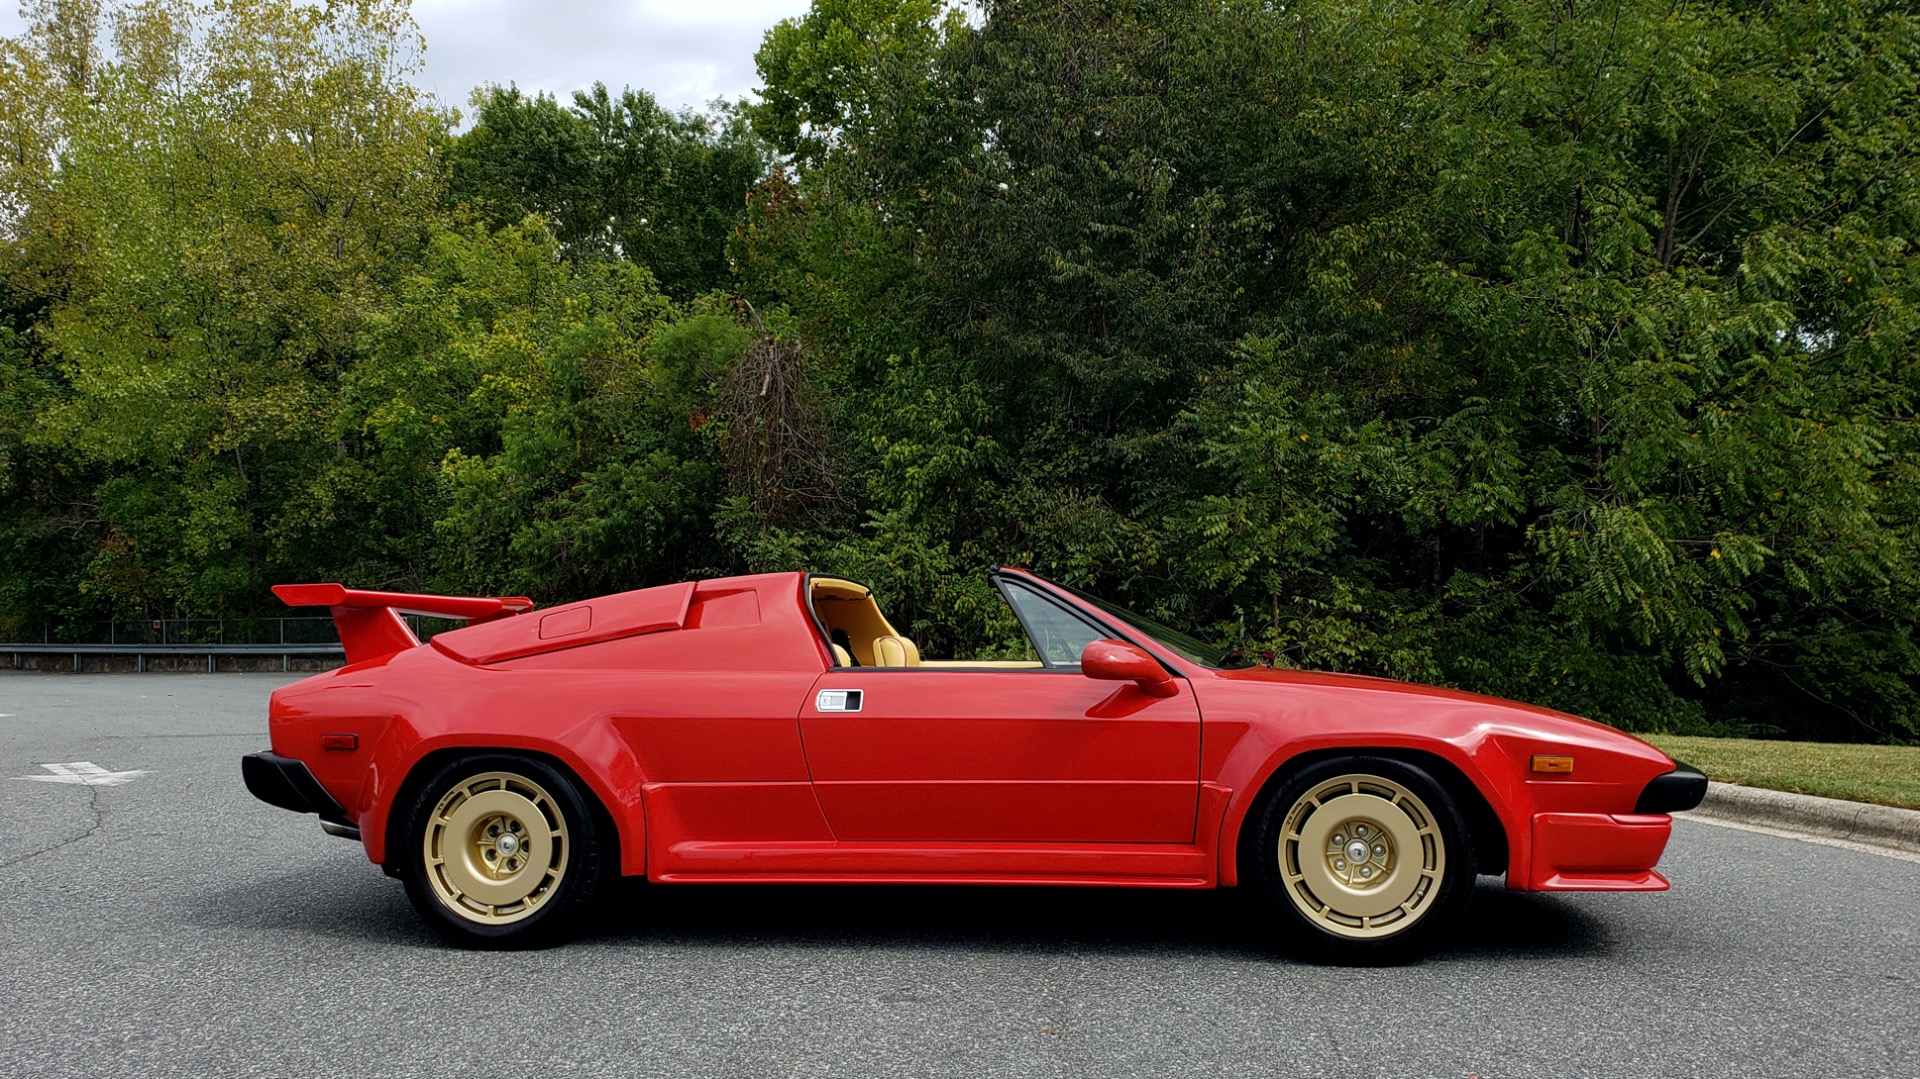 Used 1988 Lamborghini Jalpa 3.5 / 5-Speed Man / Low Miles / Excellent Condition for sale $108,995 at Formula Imports in Charlotte NC 28227 23